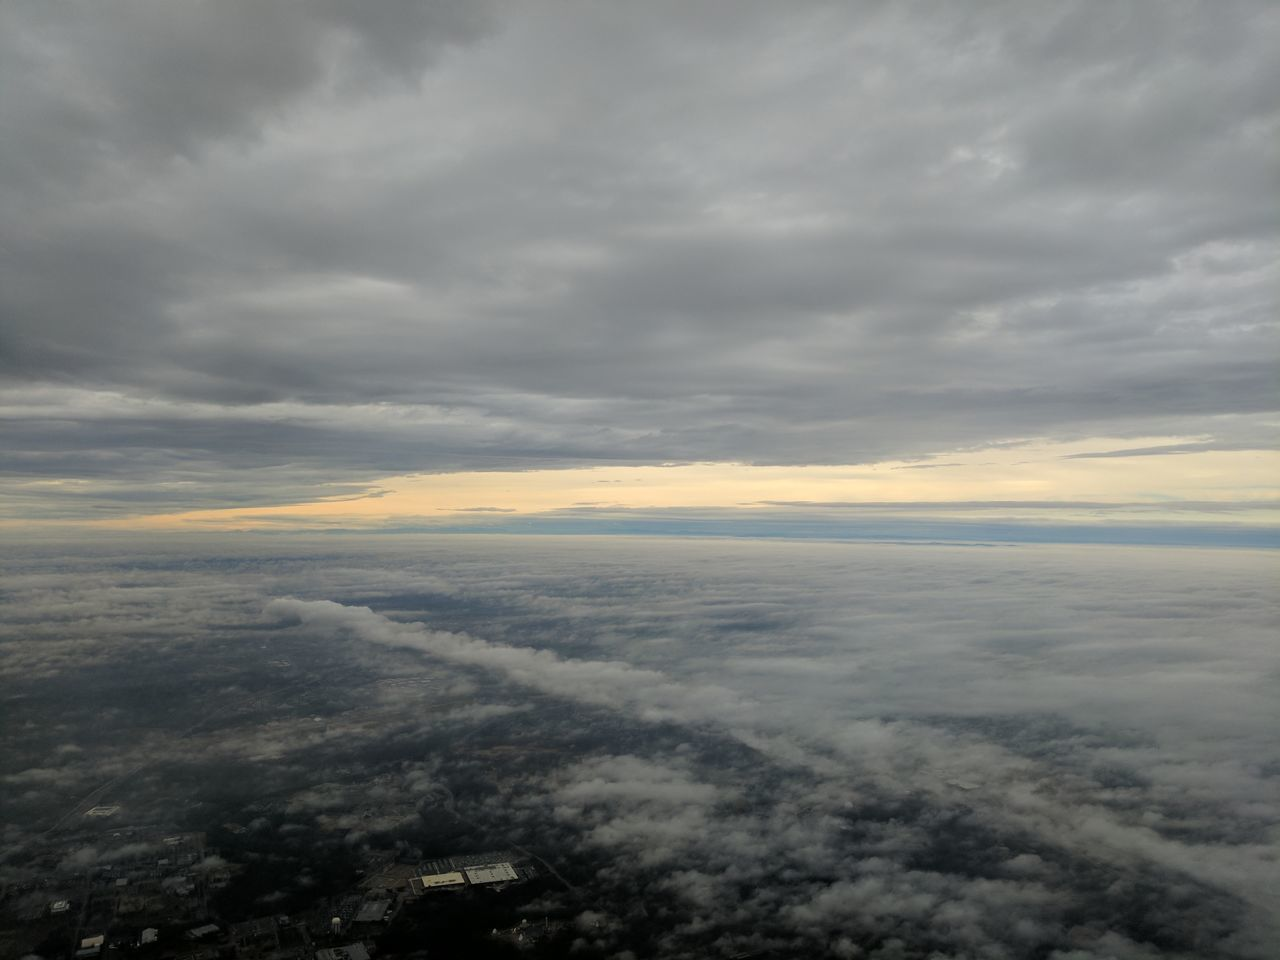 cloud - sky, nature, tranquility, beauty in nature, scenics, tranquil scene, sky, cloudscape, atmospheric mood, majestic, no people, outdoors, aerial view, sunset, backgrounds, day